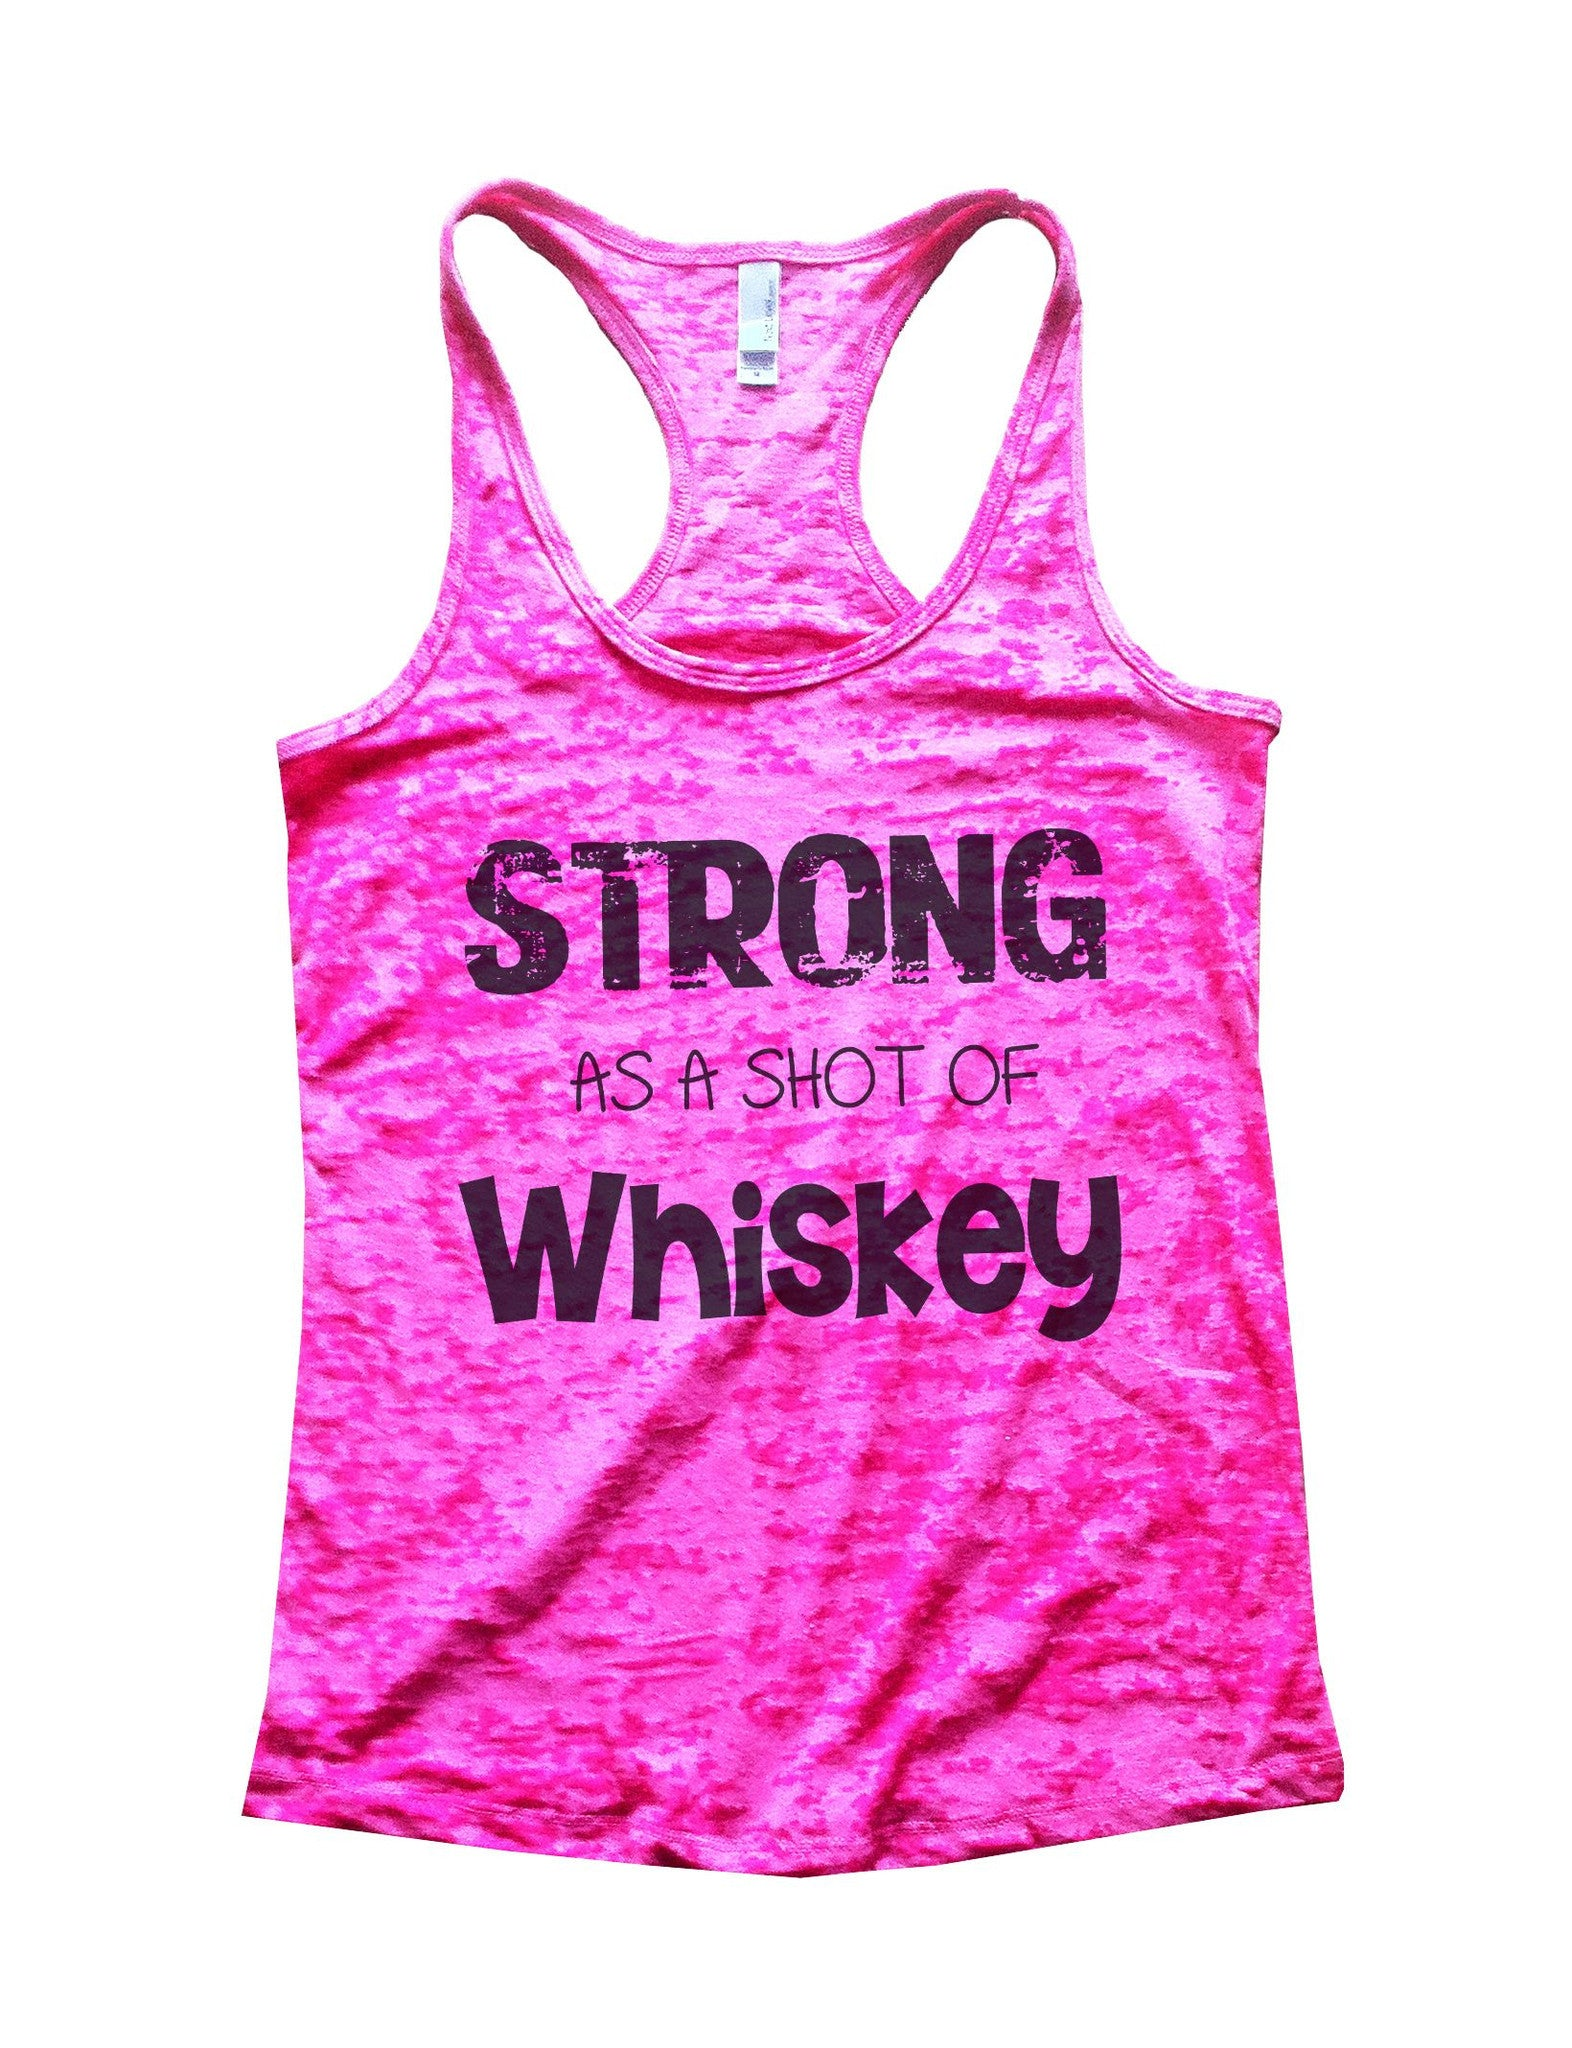 Strong As A Shot Of Whiskey Burnout Tank Top By BurnoutTankTops.com - 717 - Funny Shirts Tank Tops Burnouts and Triblends  - 3